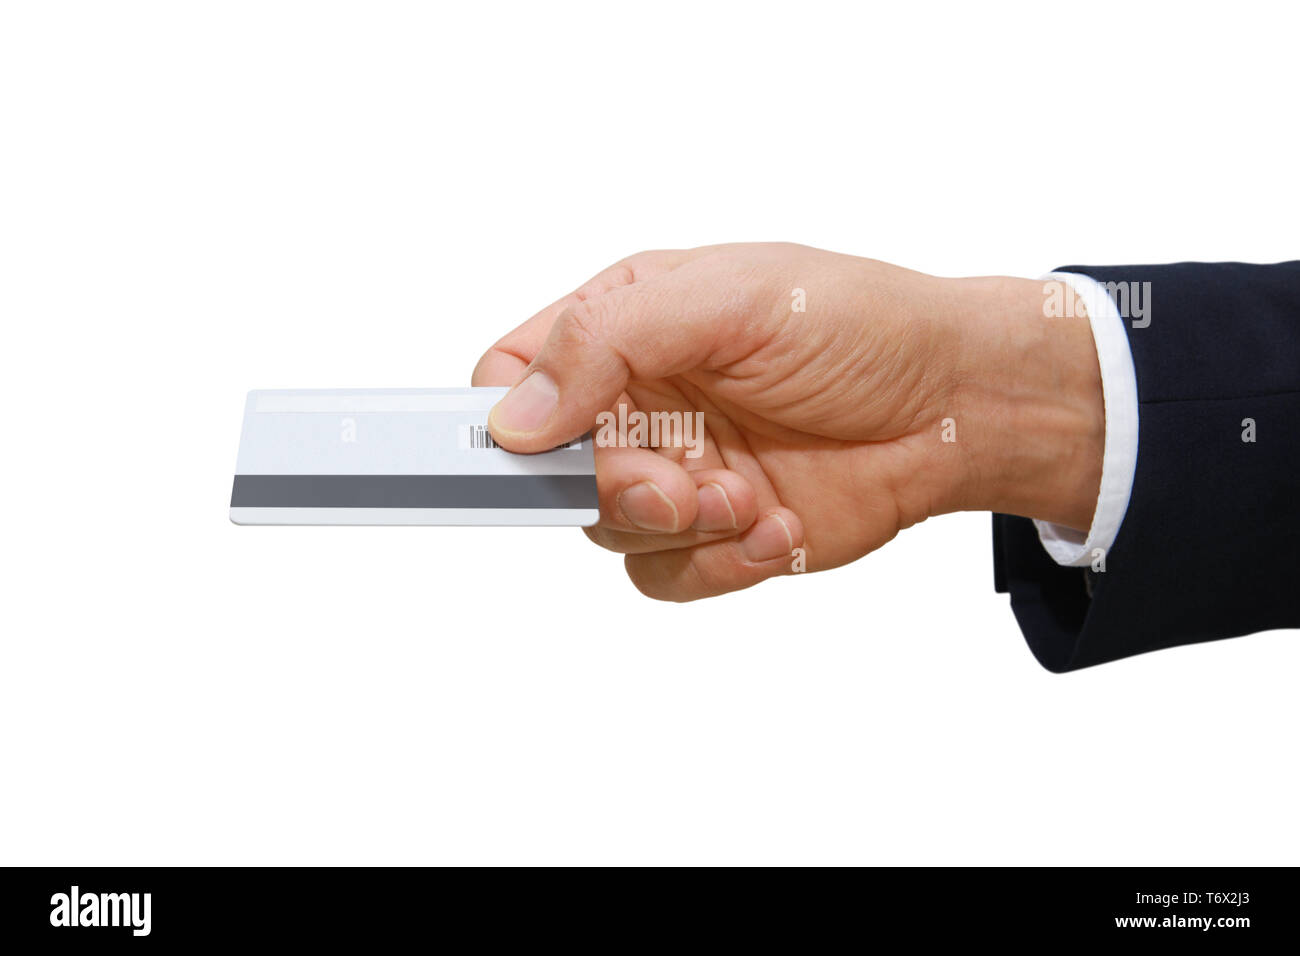 Gesture series, hand holds banker's card - Stock Image